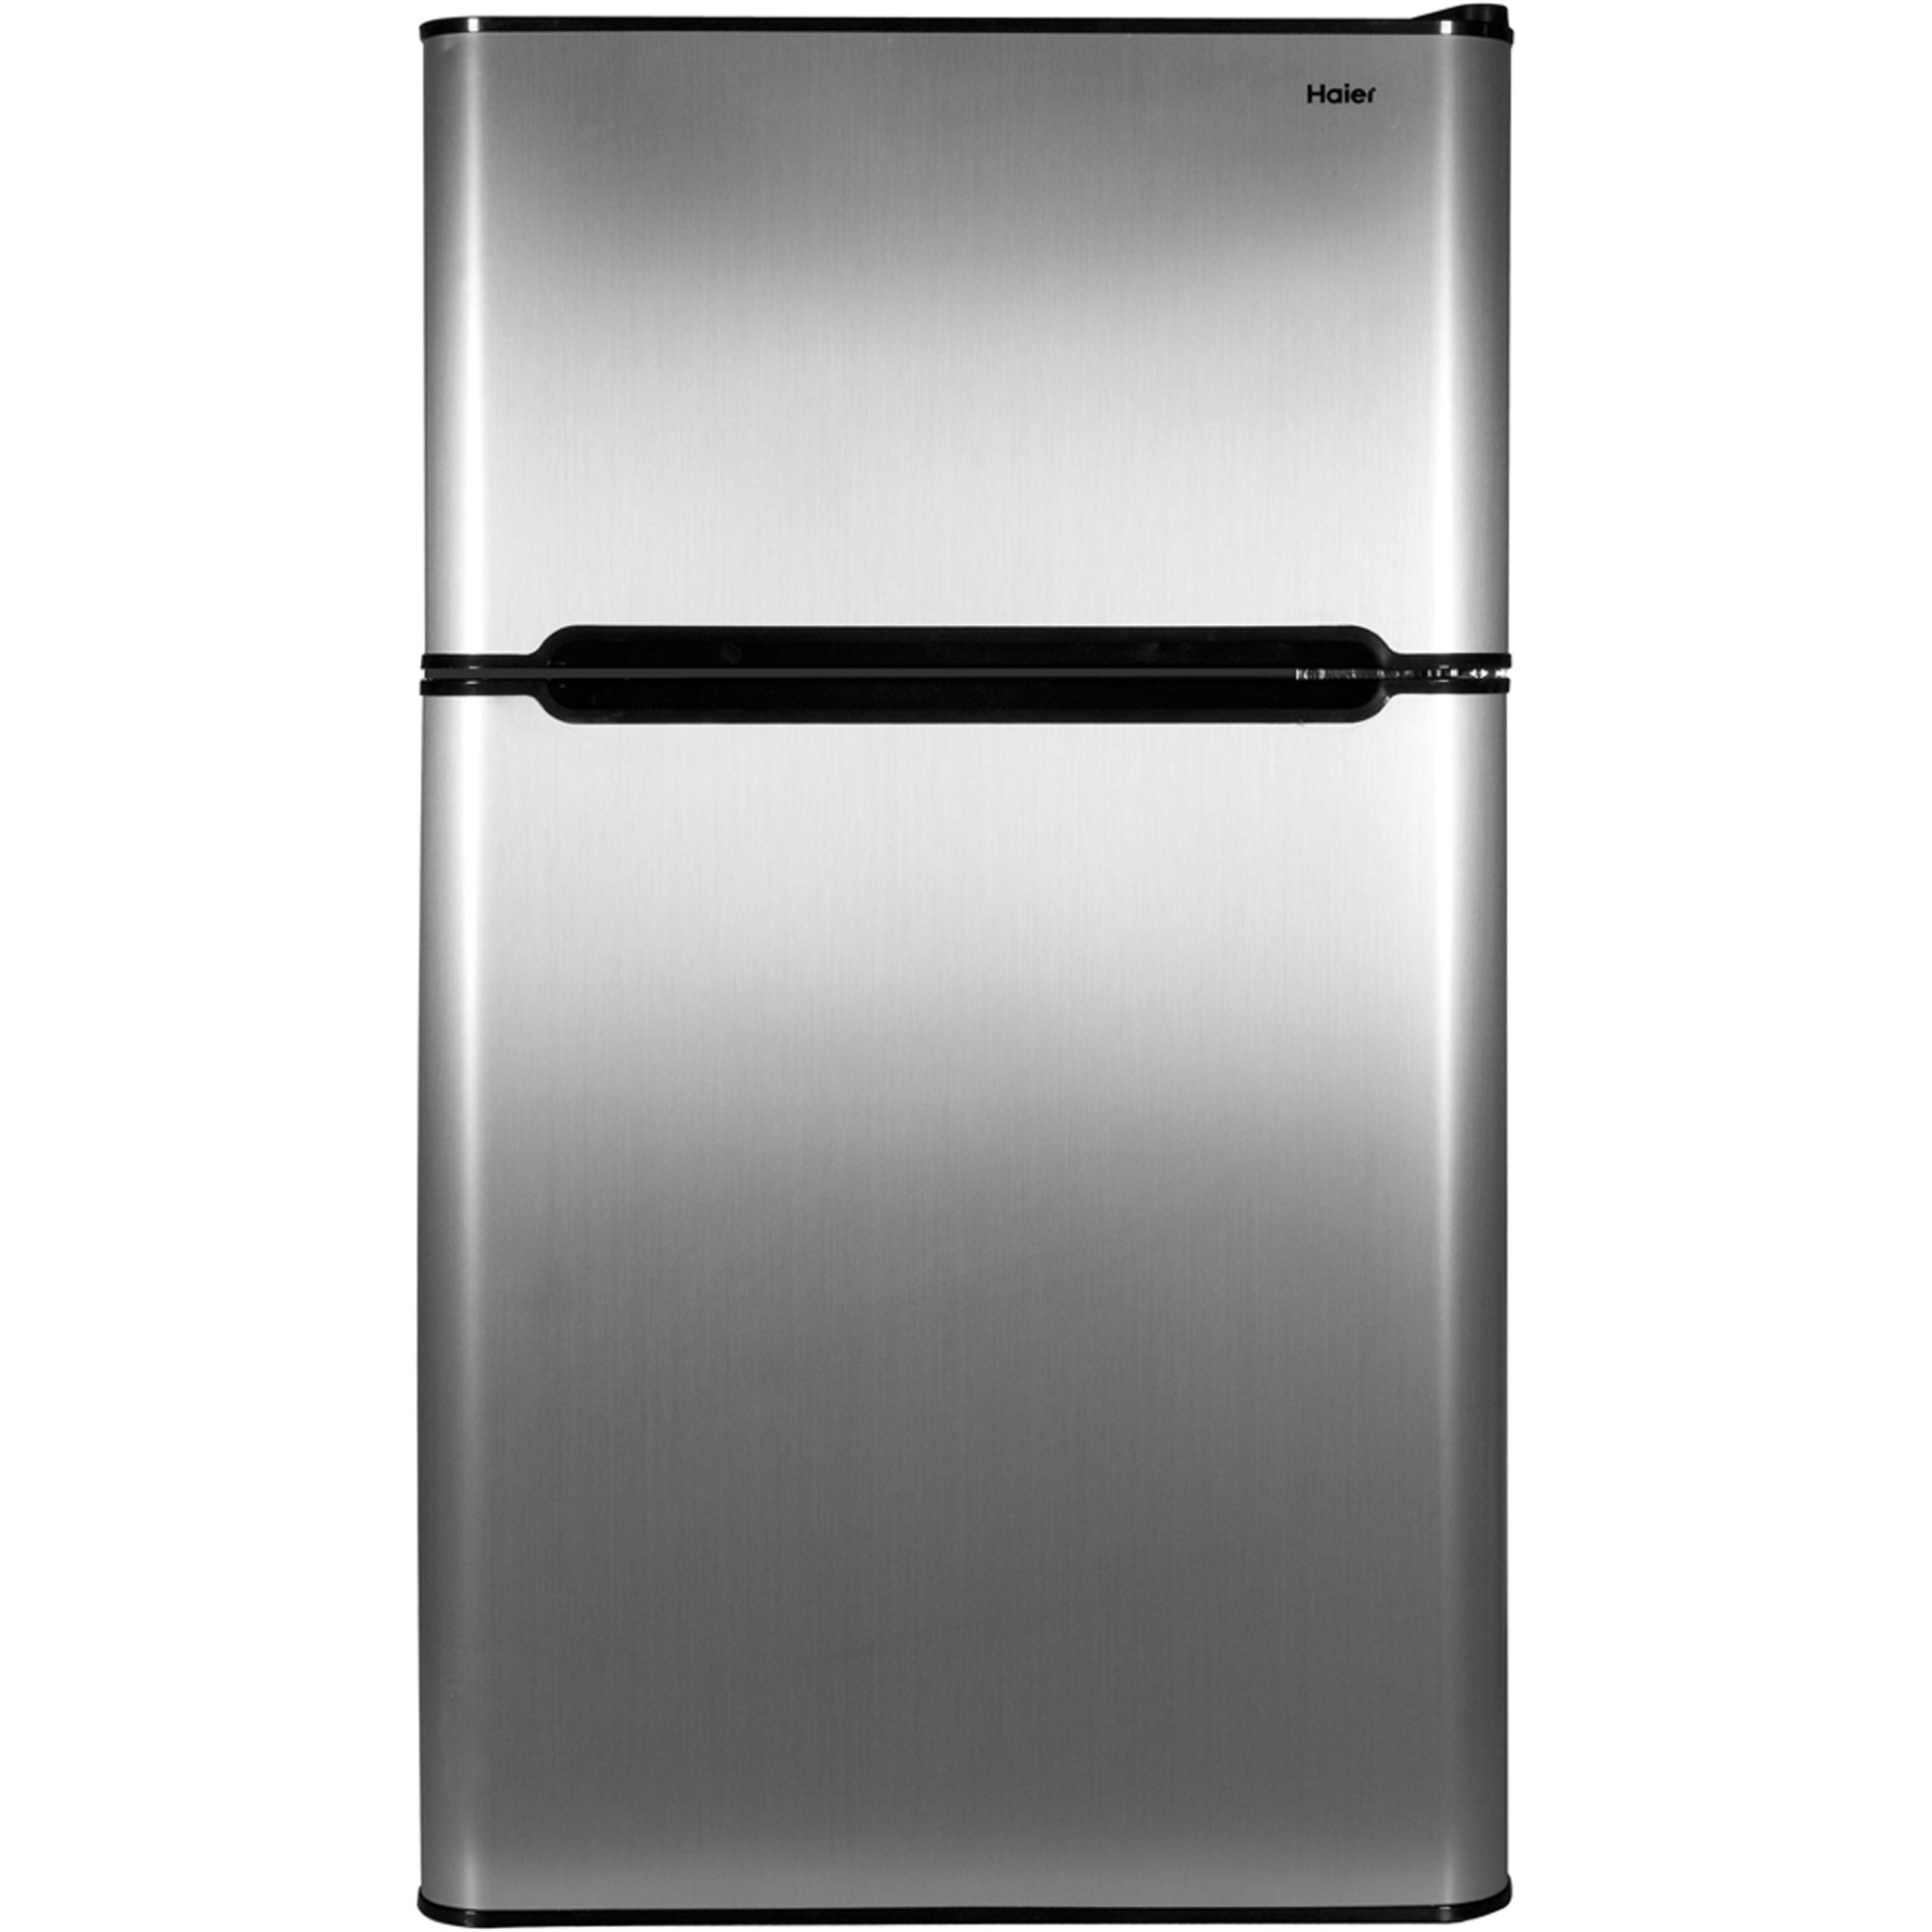 Review of Haier 3.2 Cu Ft Two Door Refrigerator with Freezer HC32TW10SV